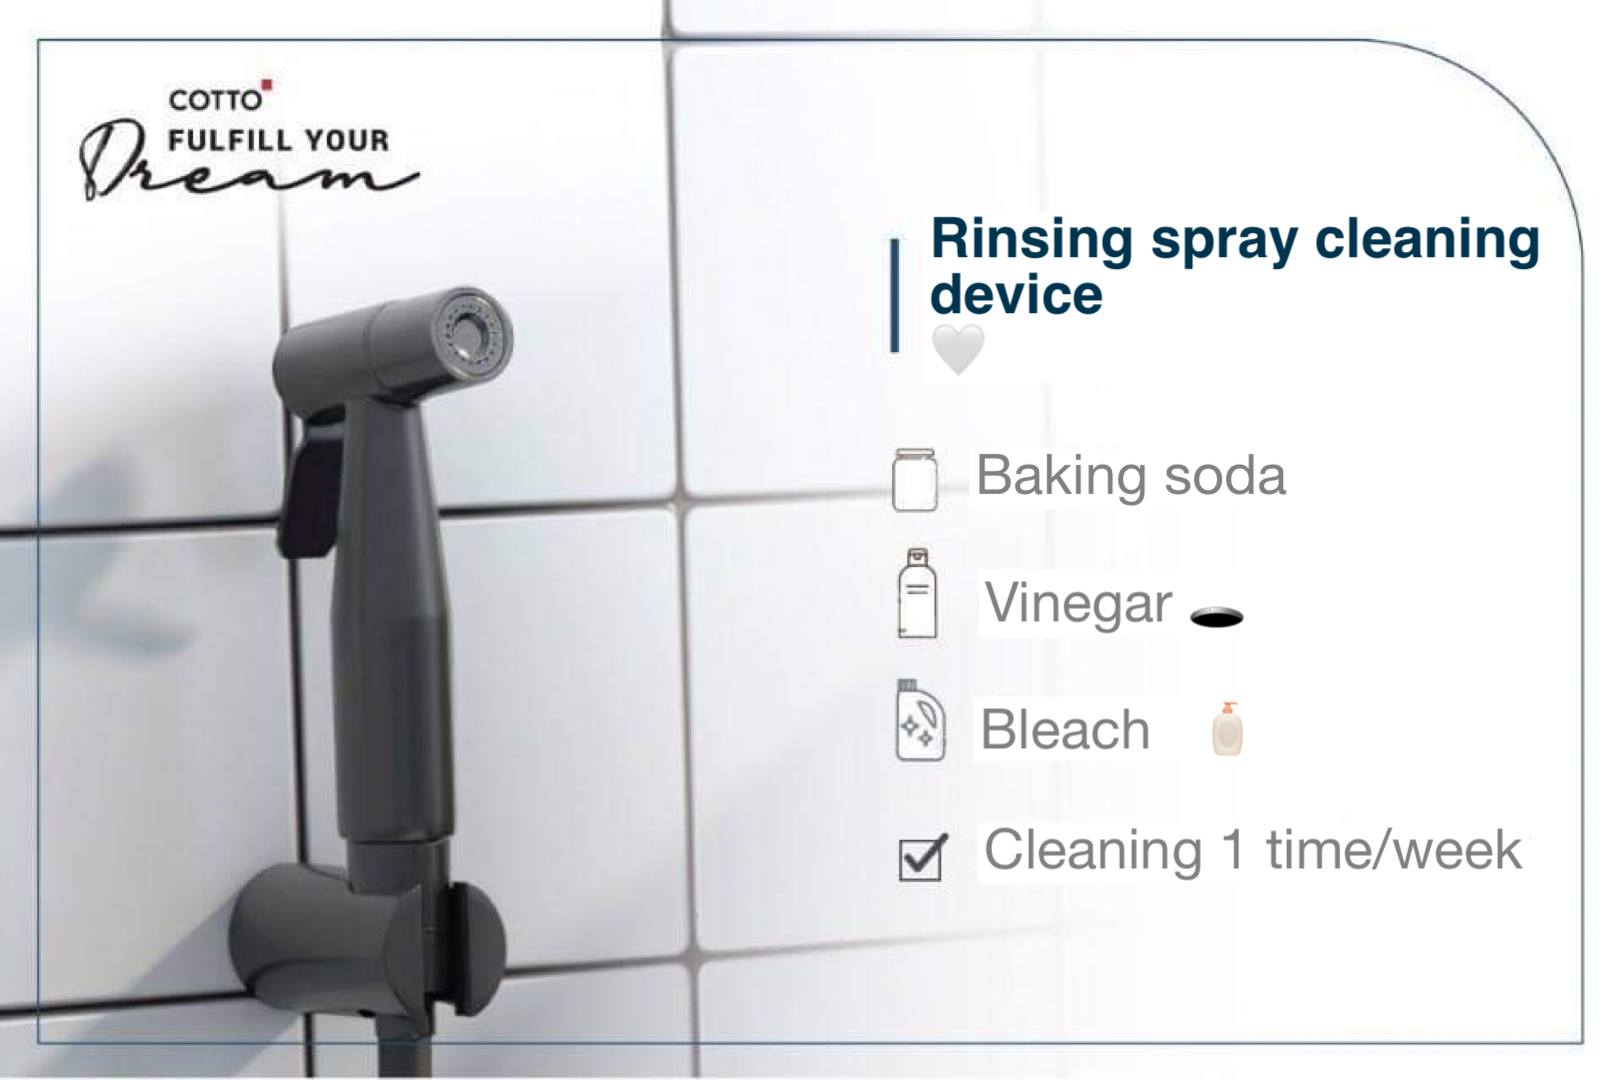 Show how to clean bathroom